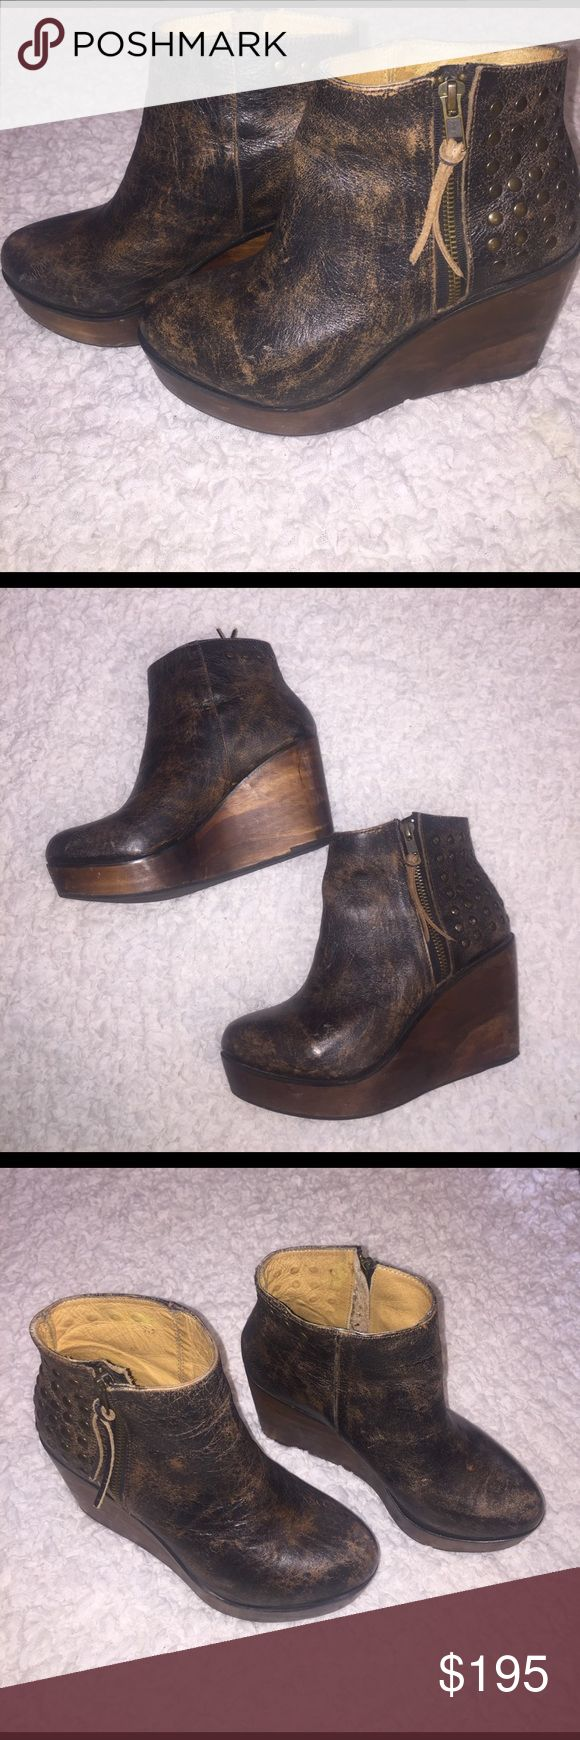 Bed Stu Platform Wedge Bootie Bed Stu Ghent wedge bootie. Extremely well made. Only wore twice, in perfect condition!! Bed Stu Shoes Ankle Boots & Booties